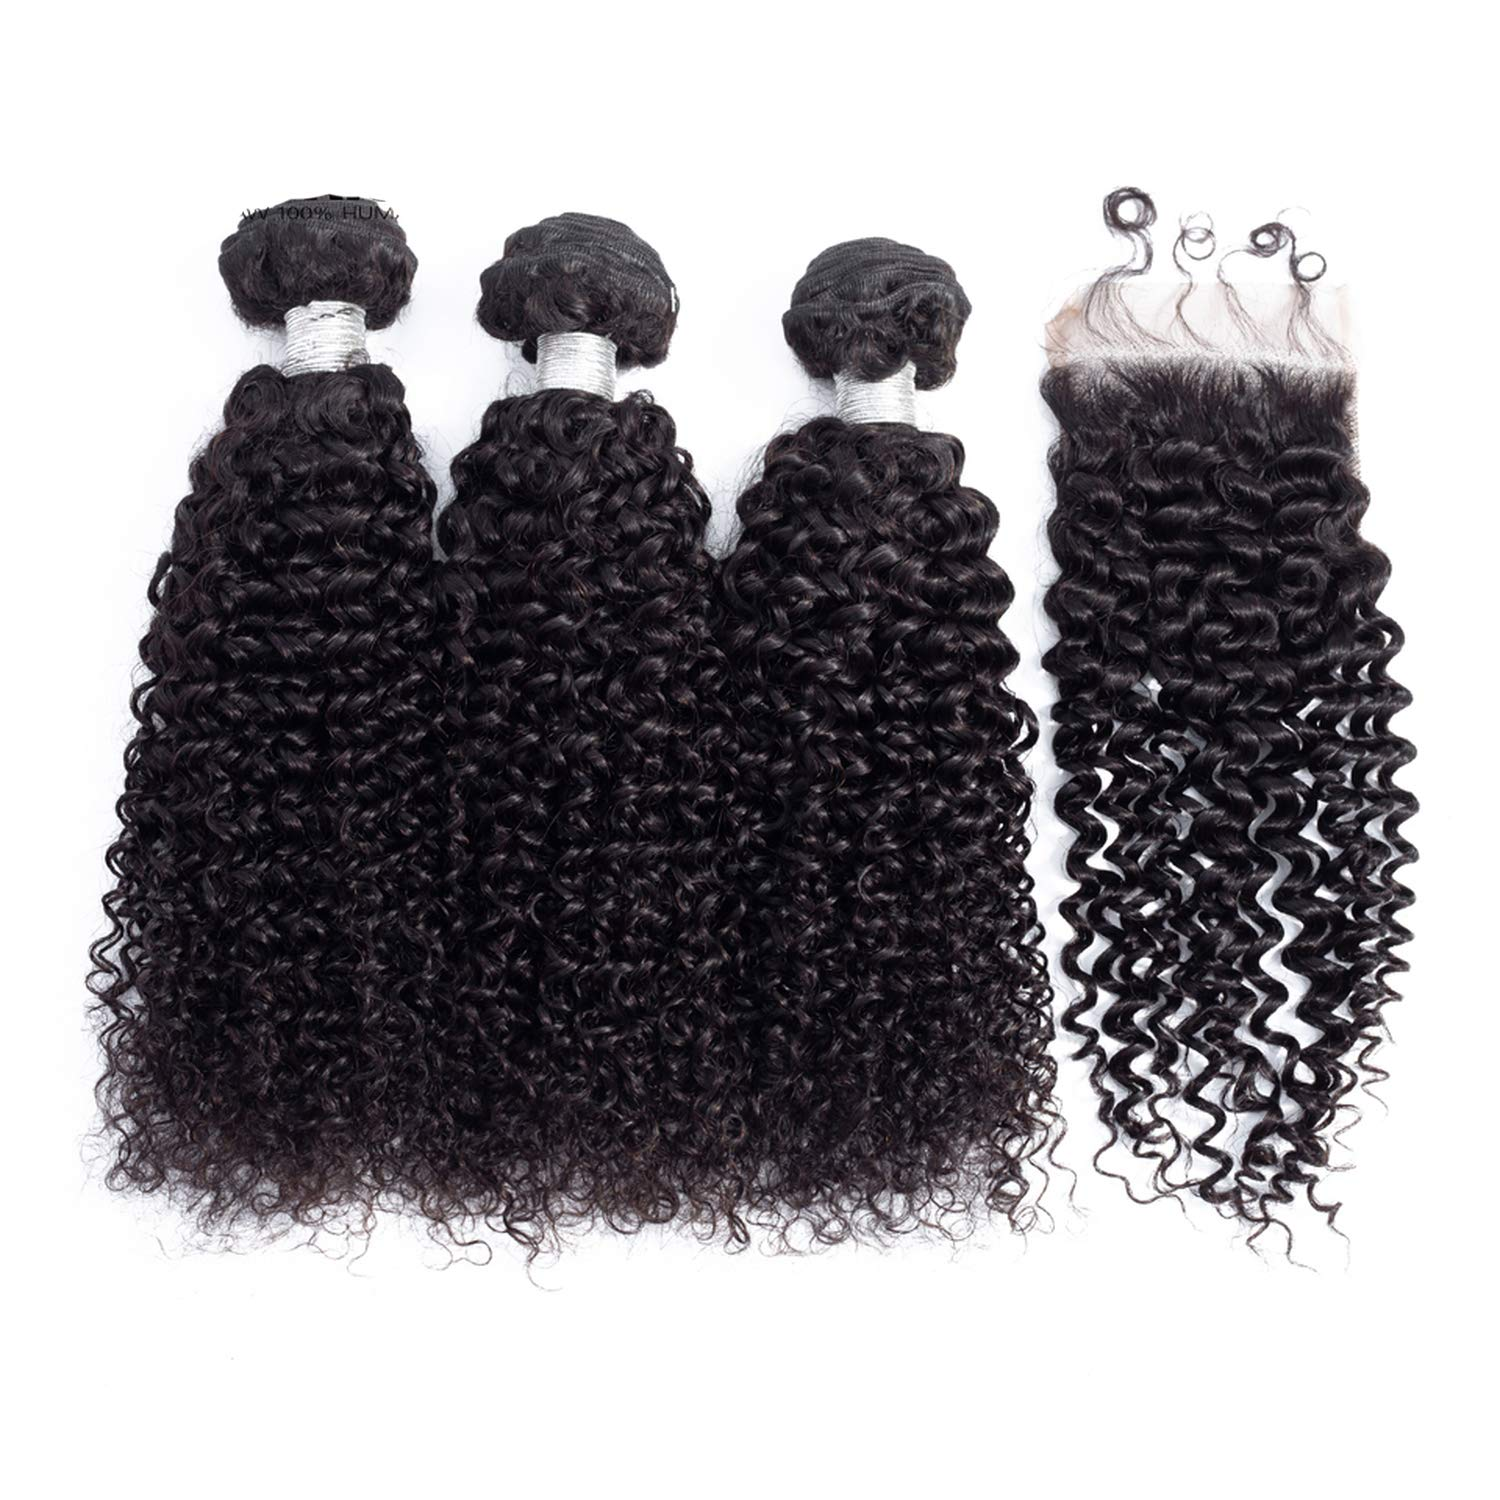 B07RNQYCG2 100% Peruvian Hair 4 PCS/Lot Kinky Curly Human Hair Bundles With 44 Closure With Baby Hair Natural Color,Natural Color,14 14 14 & Closure12,Free Part 719vQuDhpRL._SL1500_